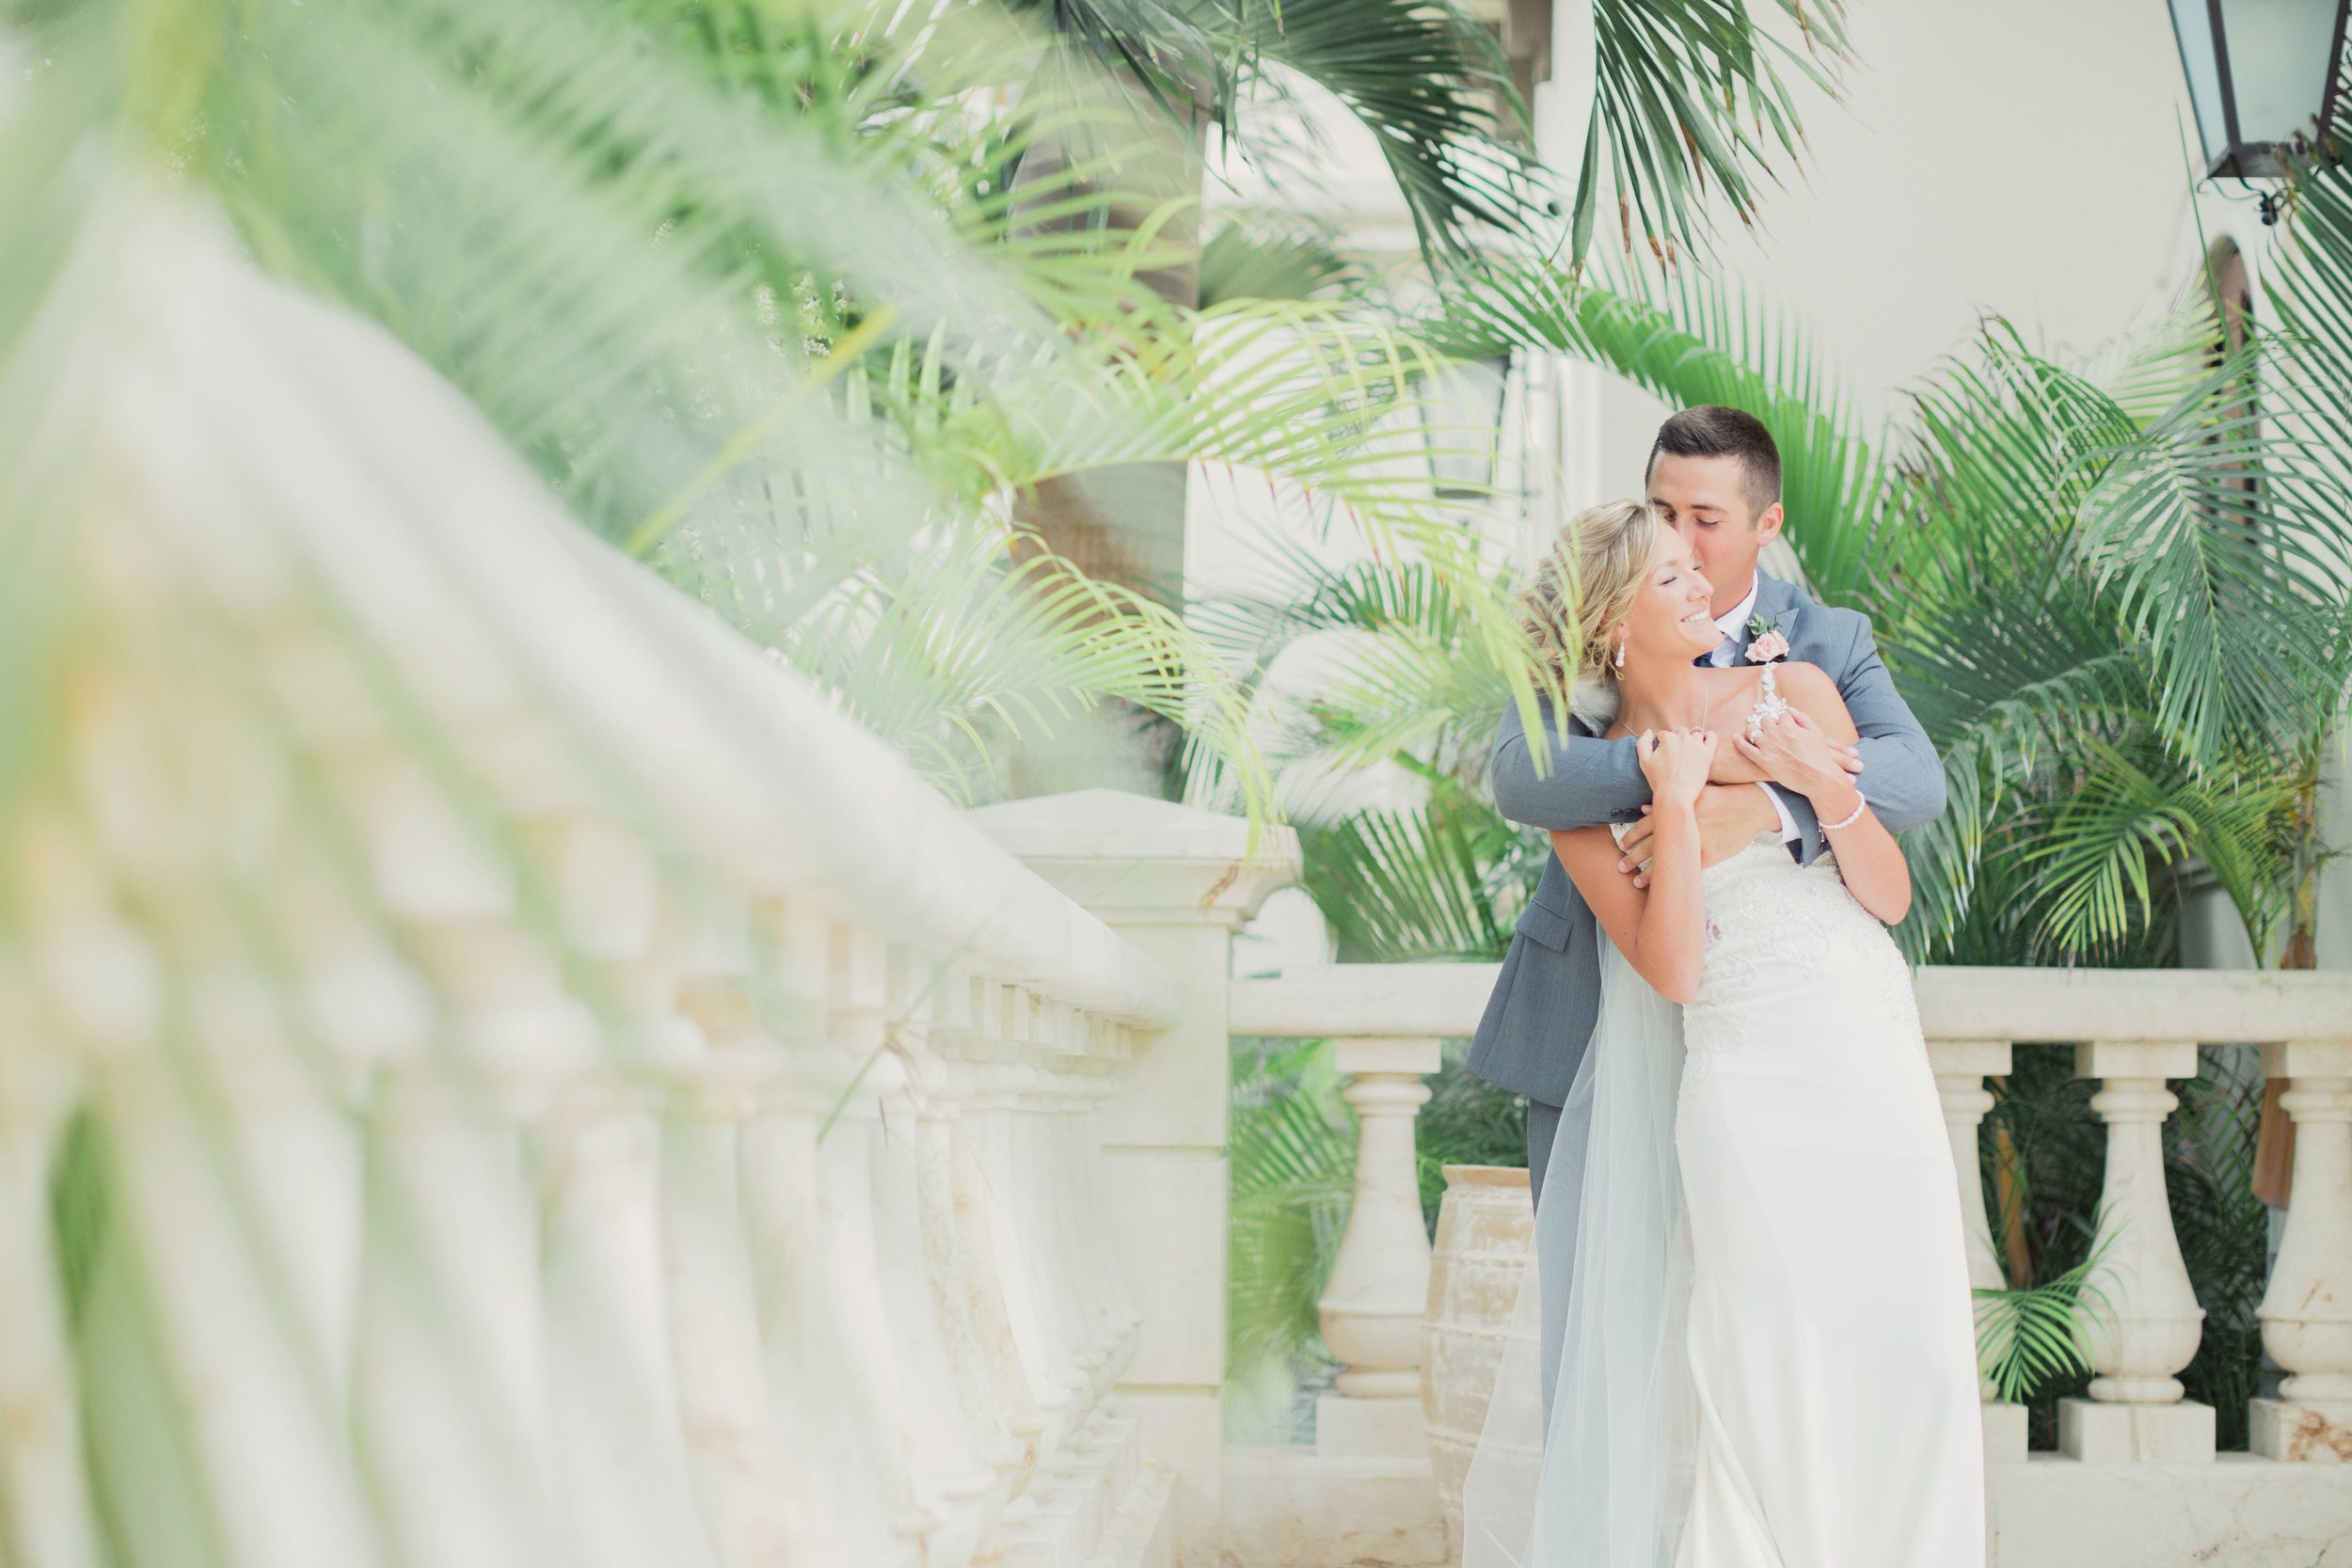 cancun-wedding-venue-villa-la-joya-81 copy-websize.jpg